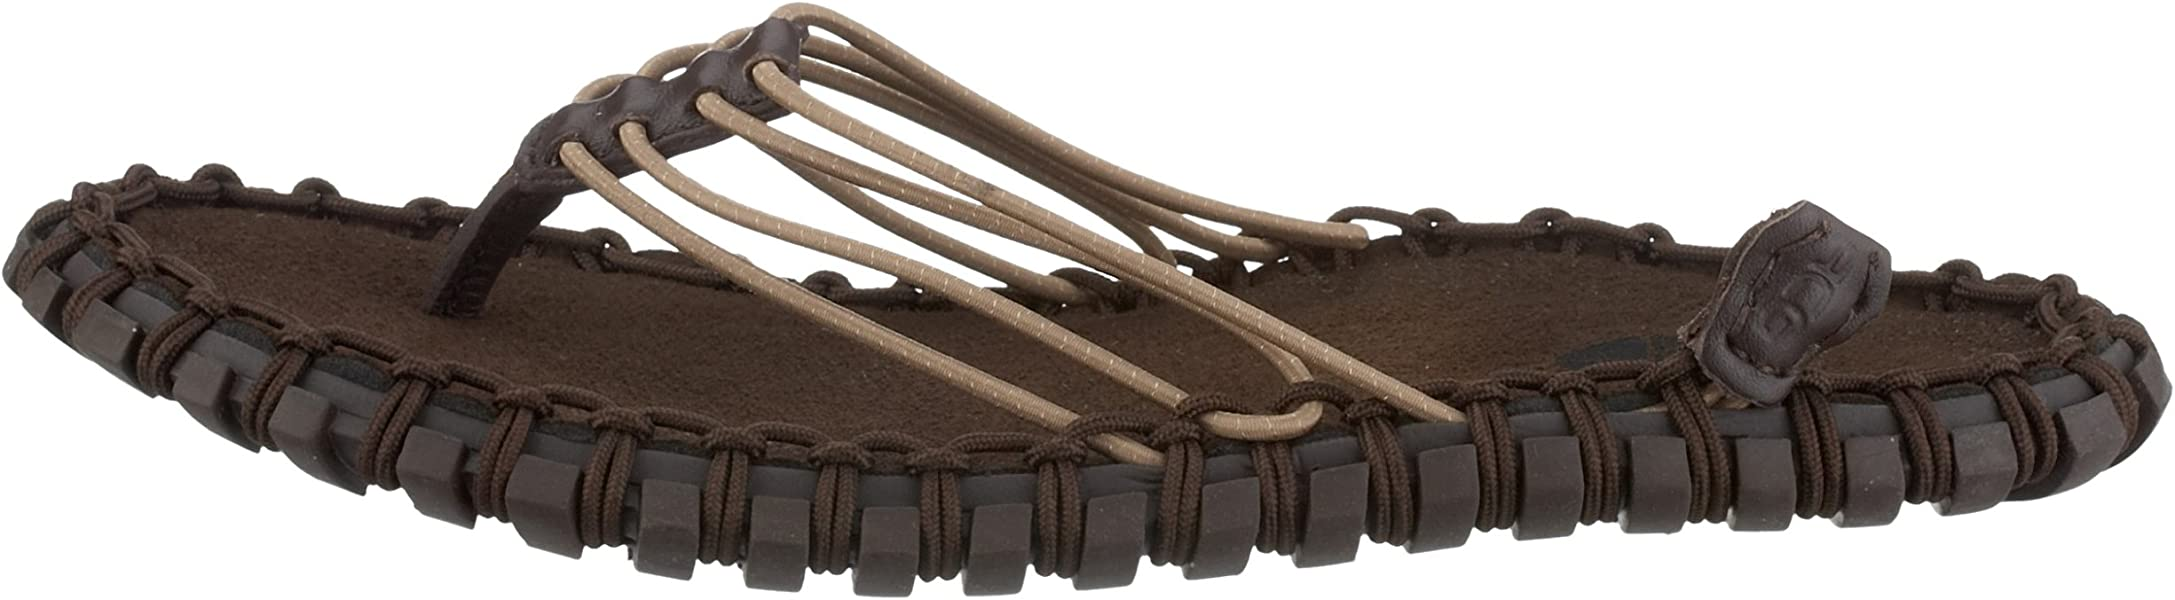 3e0b21e74fa6 Nike Valkyrie CI Womens Sandals Summer Shoes-Brown-6. Back. Double-tap to  zoom